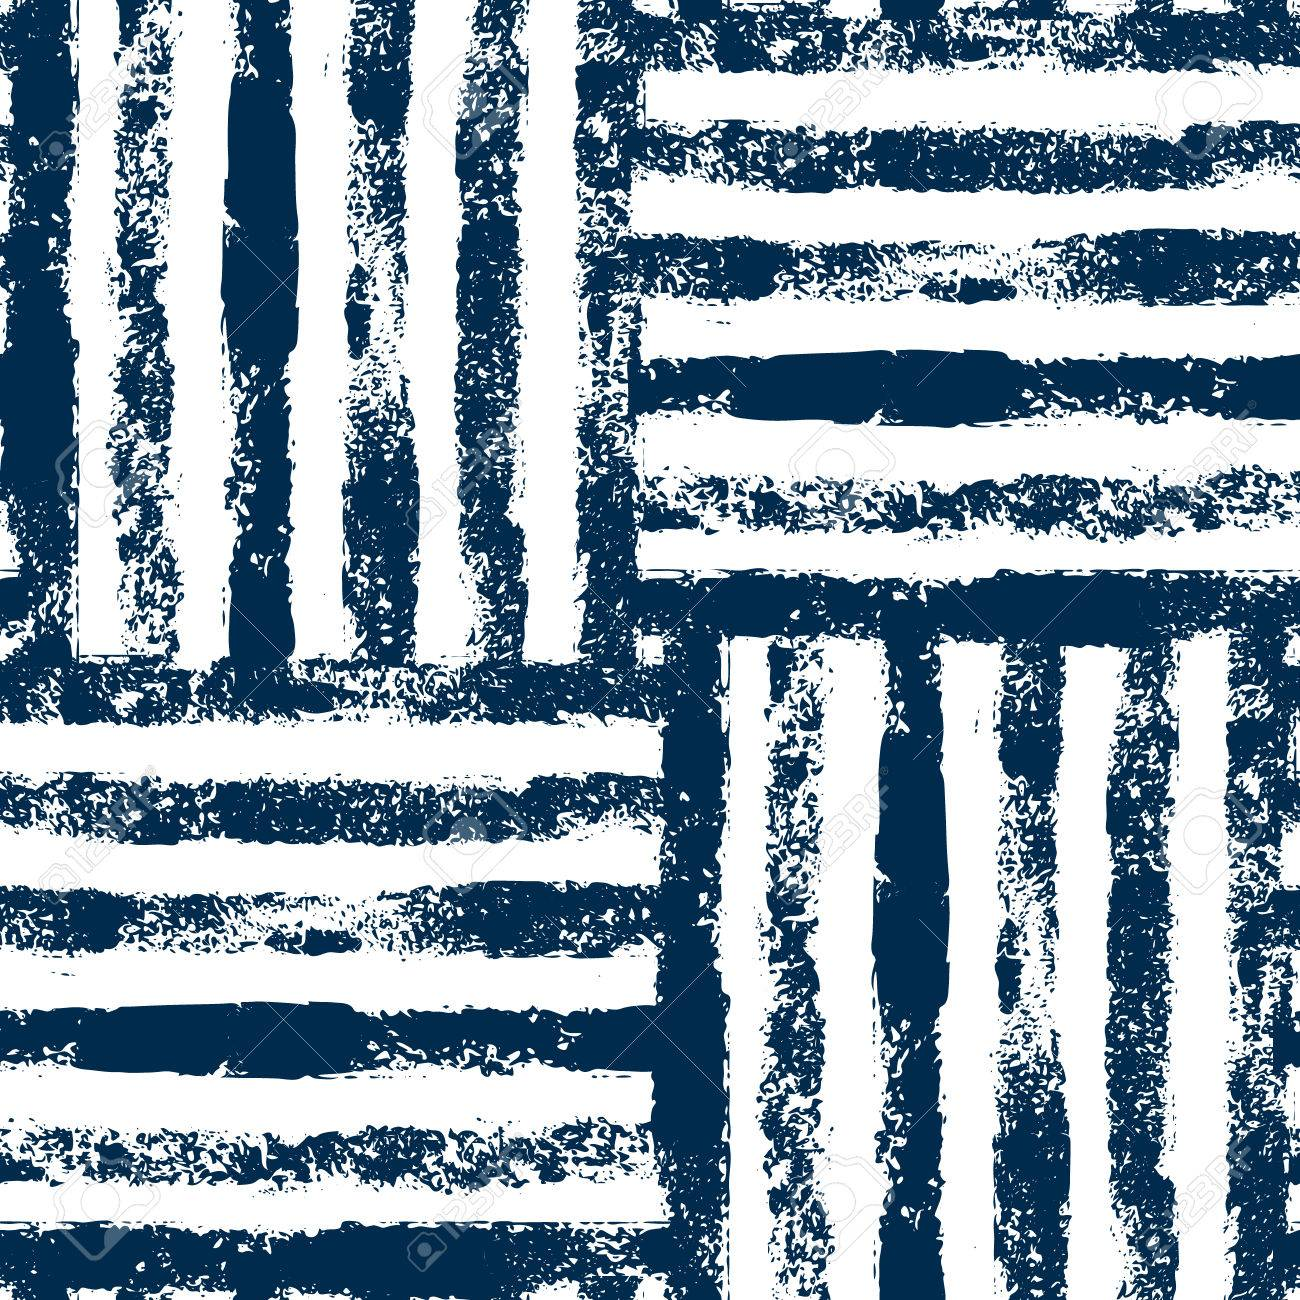 Blue and white striped woven grunge seamless pattern, background - 54496841